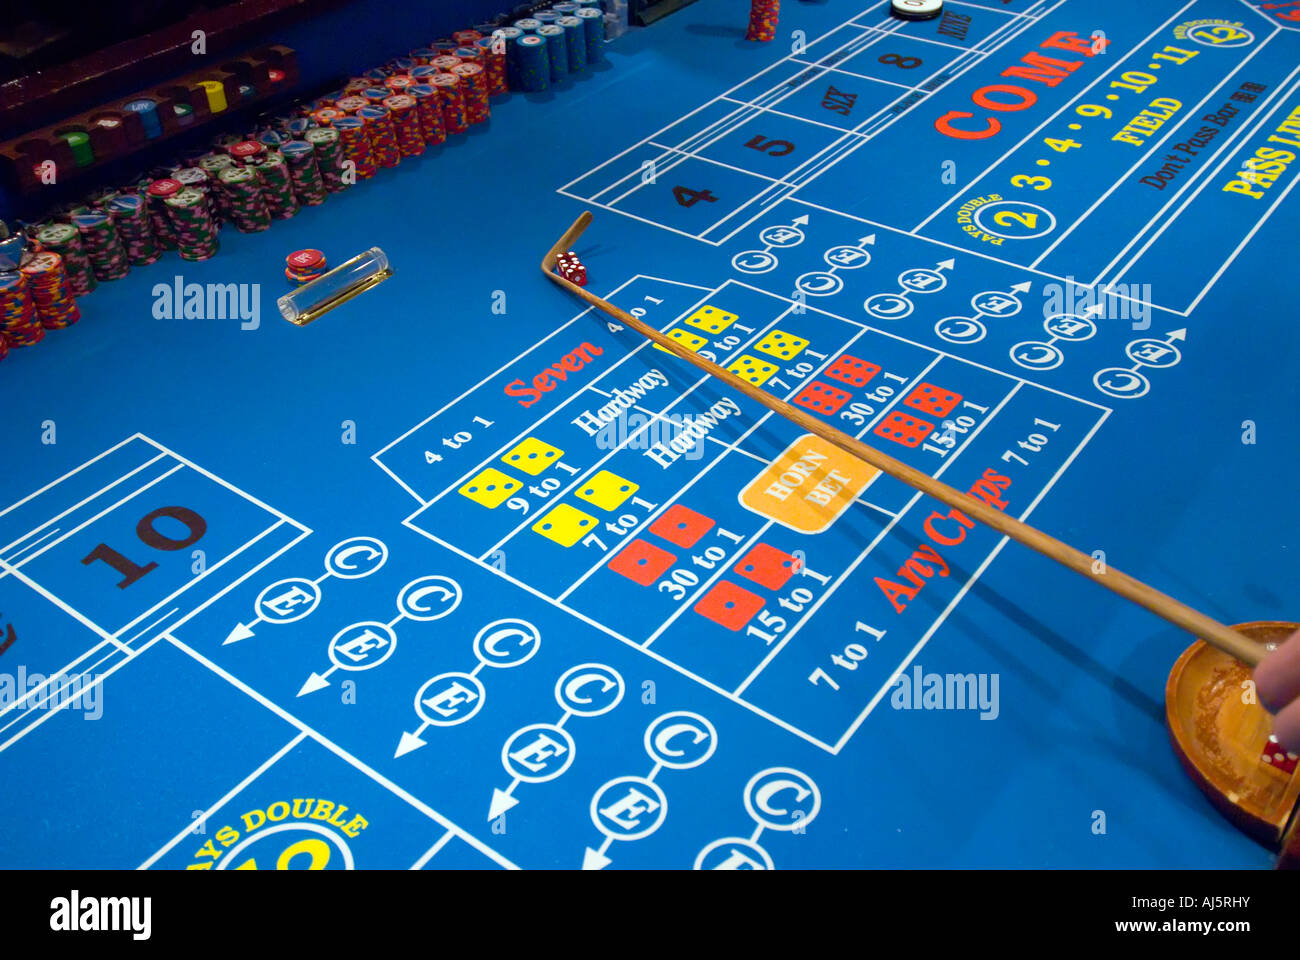 Gambling craps table action addiction addictive casino gambling game chance croupier dealer game game of chance - Stock Image